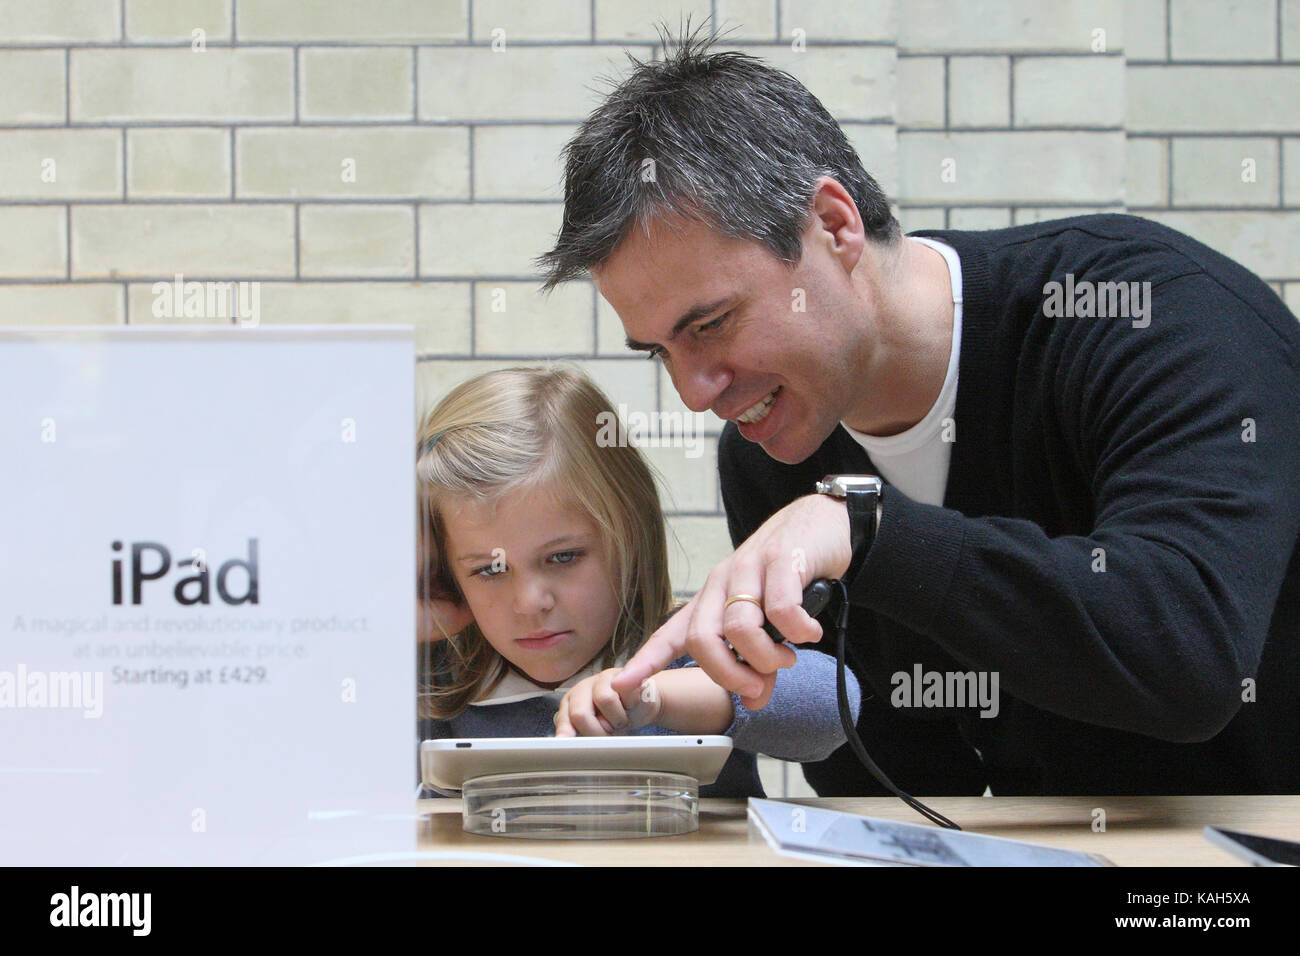 Trying out the iPad at Apples Covent Garden store in London. 07.08.2010. - Stock Image